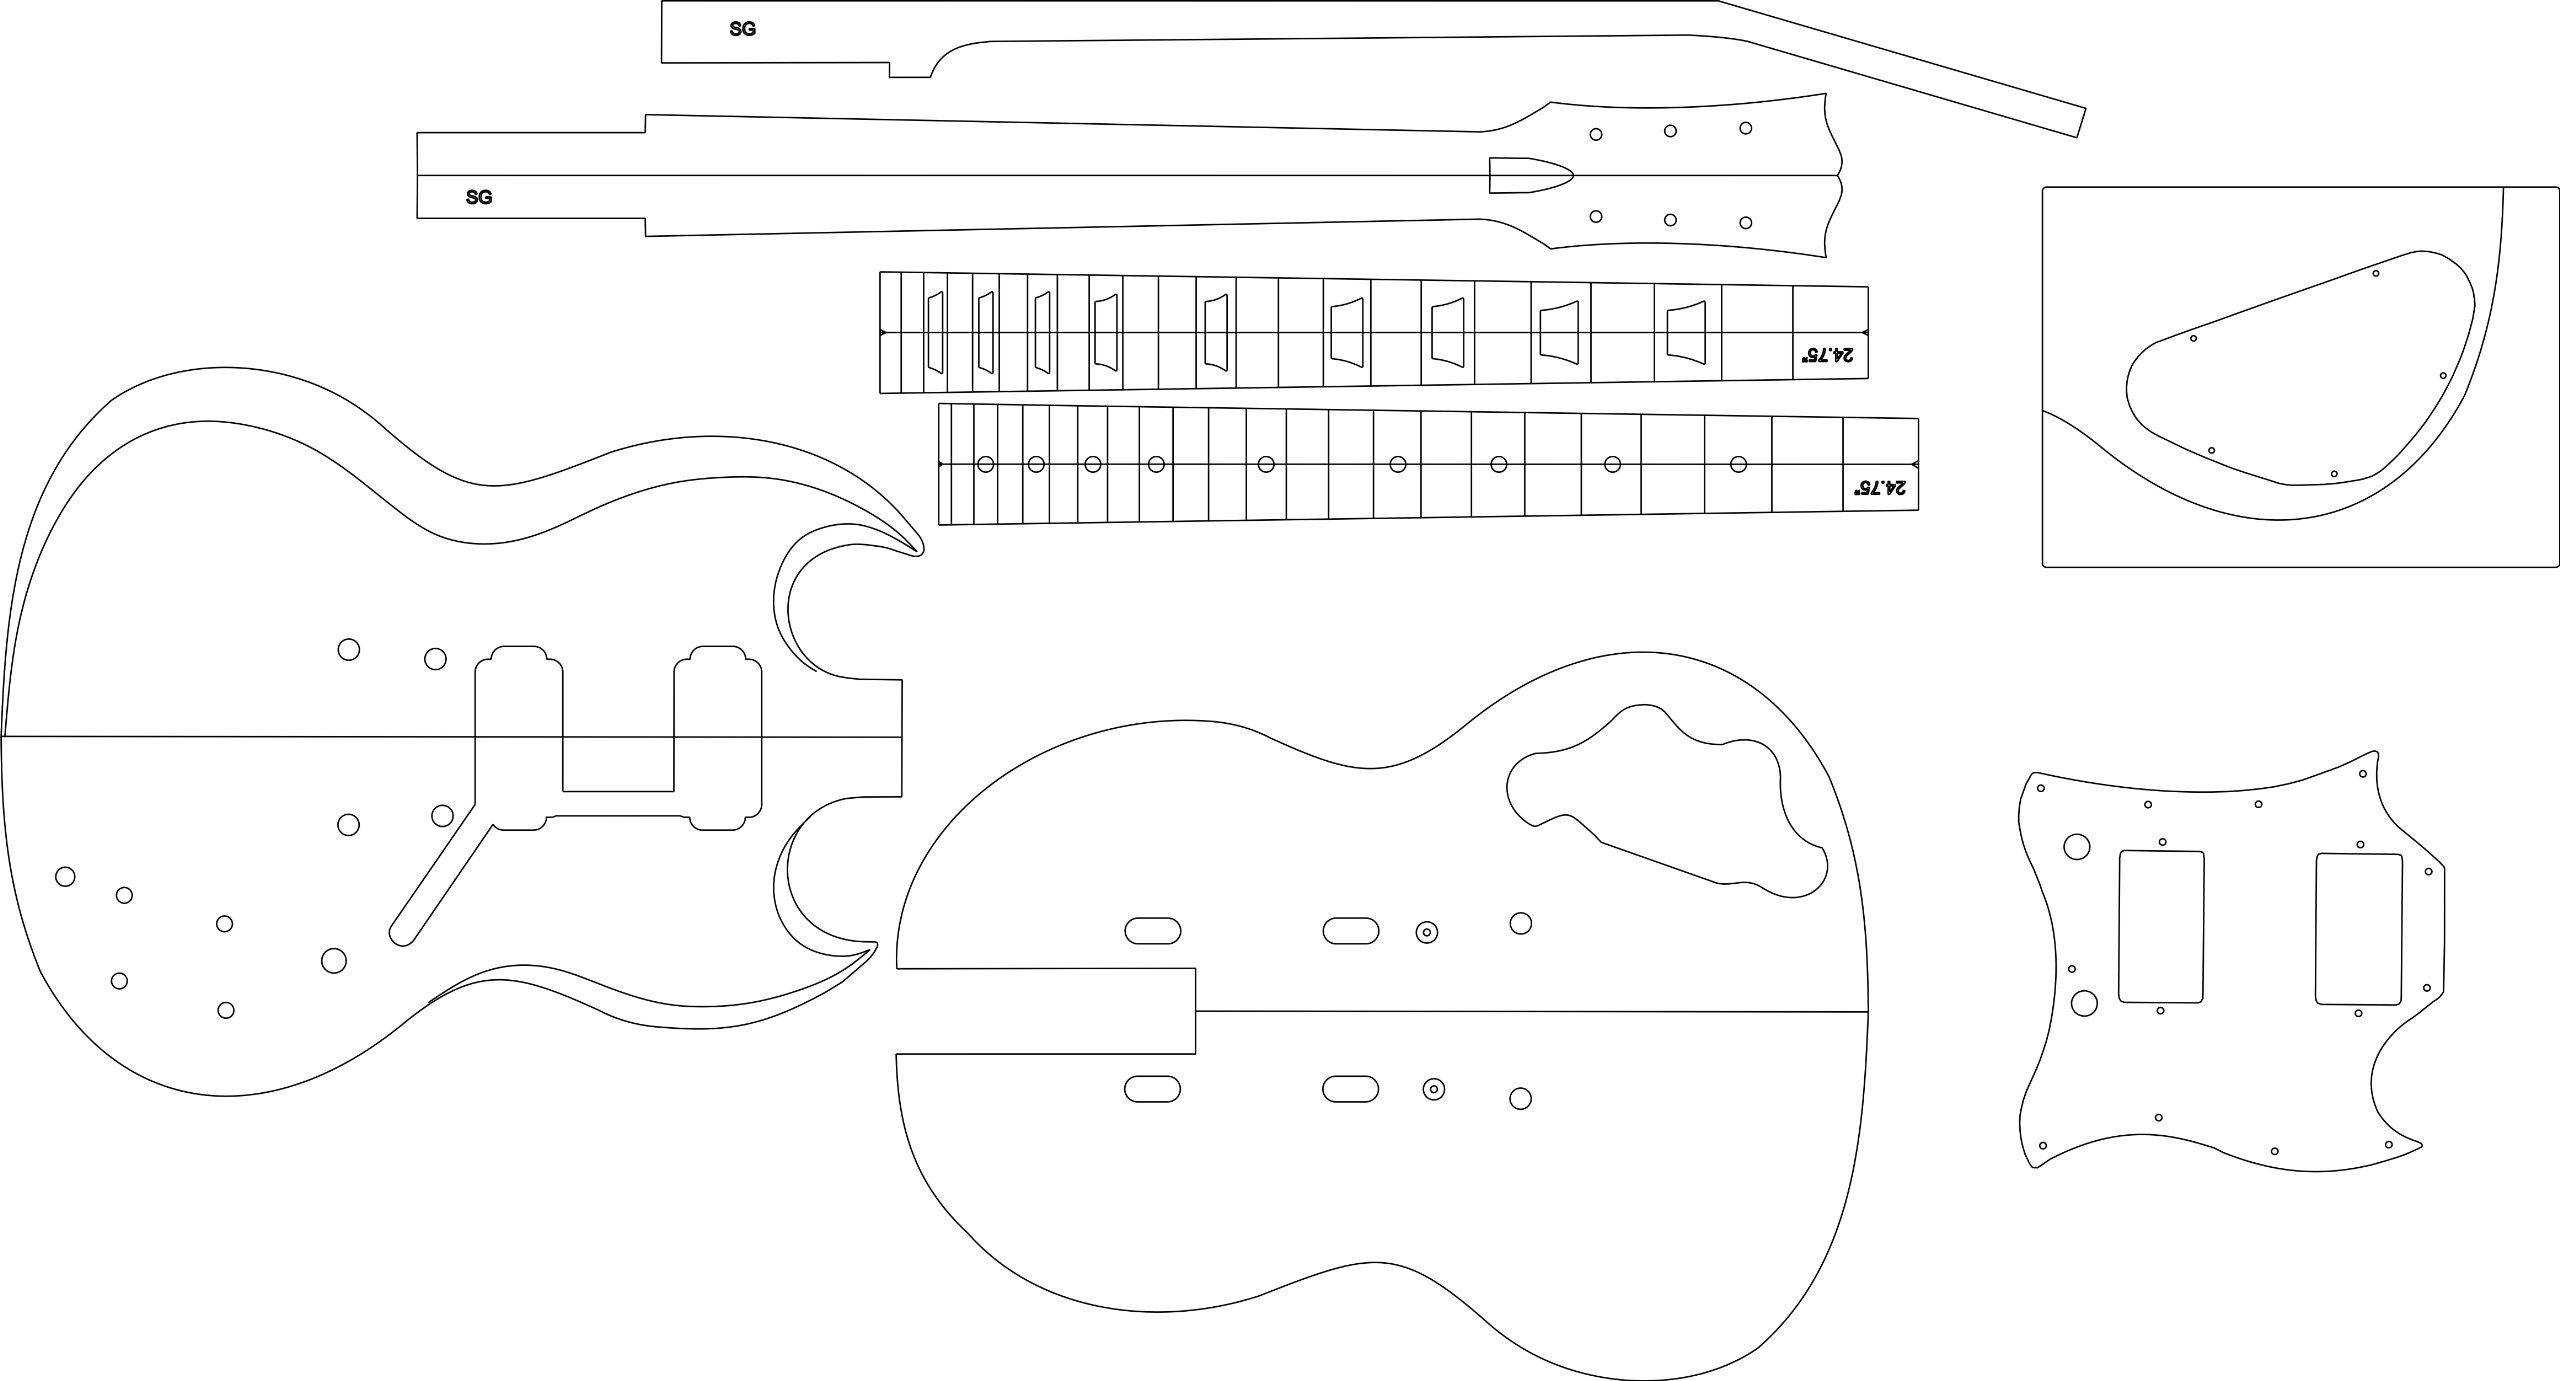 Electric Guitar Layout Template - SG by GPC